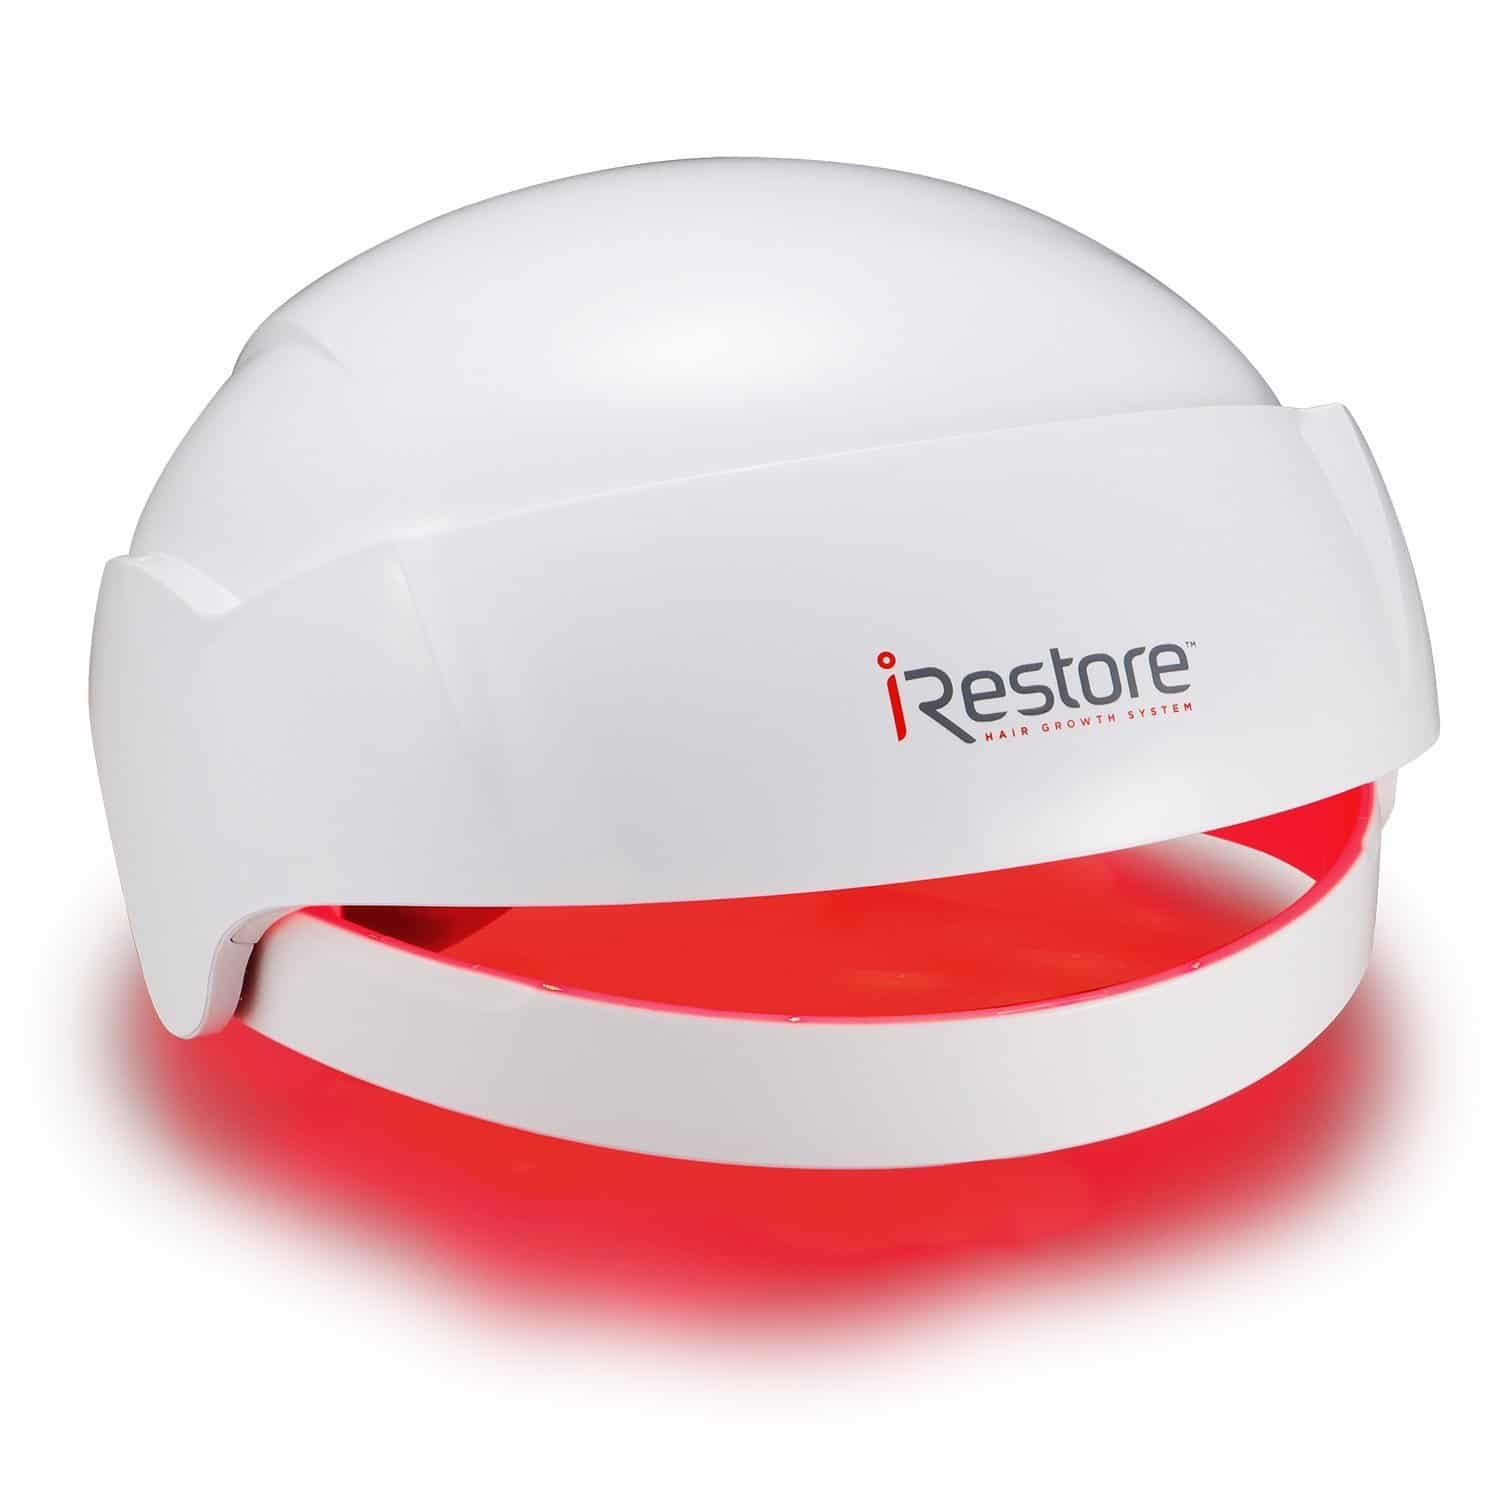 Top 5 Best Laser Product for Hair Growth iRestore